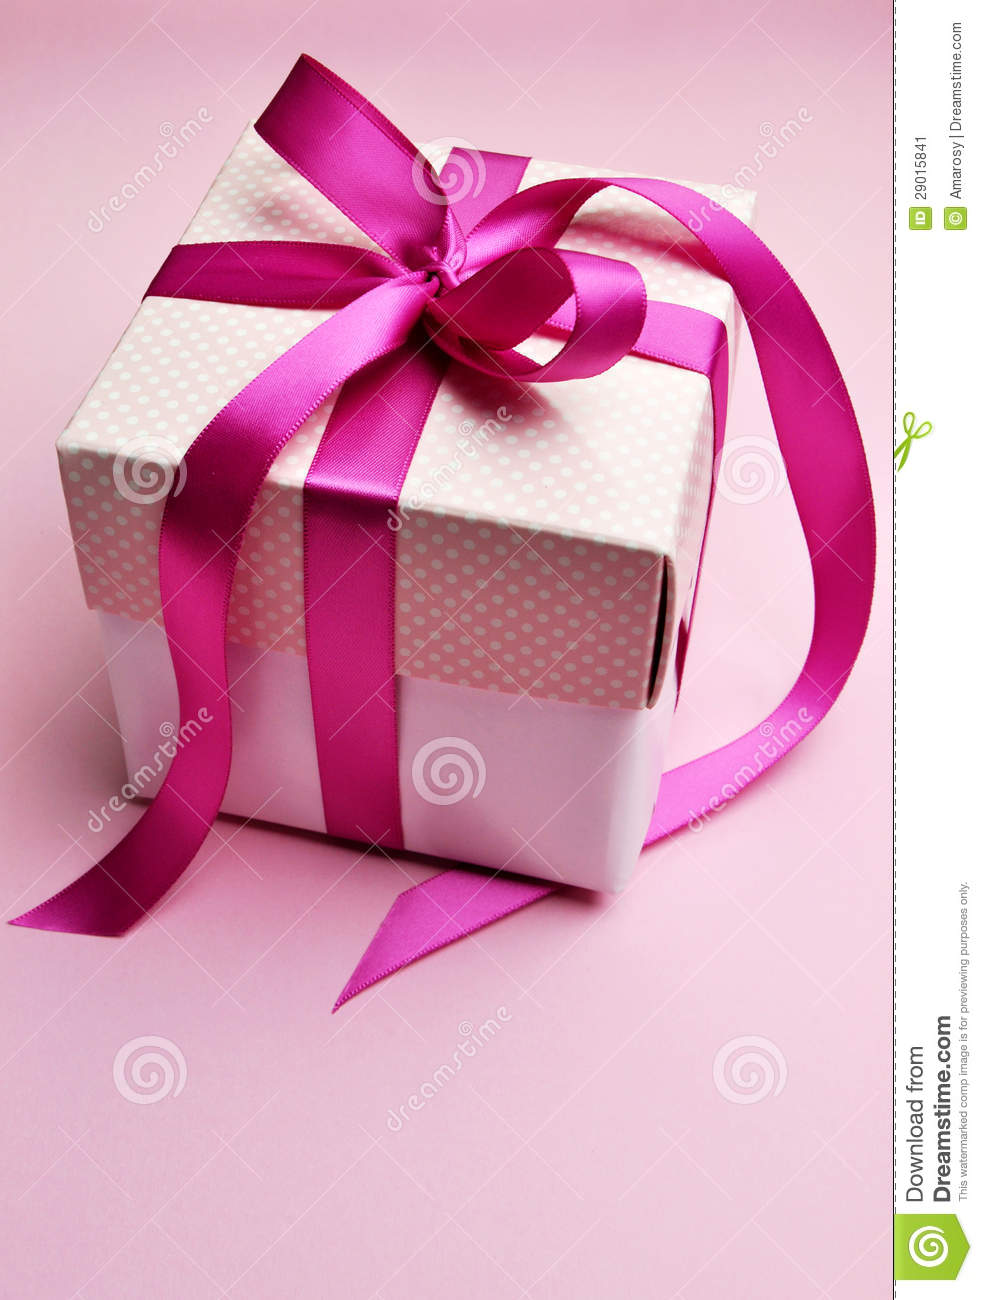 Beautiful Pink Present Gift In White Box And Polka Dot Lid